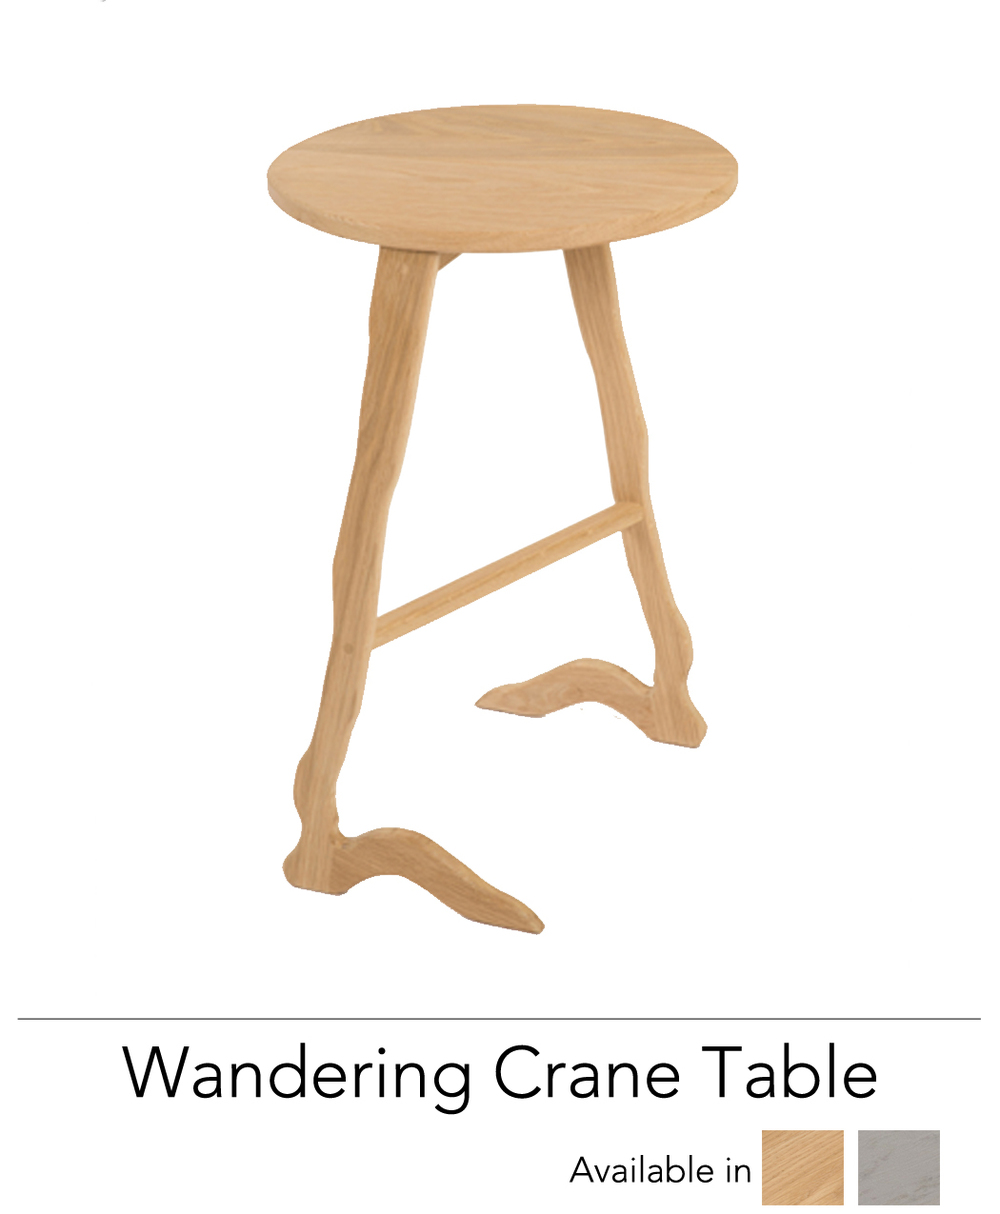 Wandering Crane Table Front New.jpg